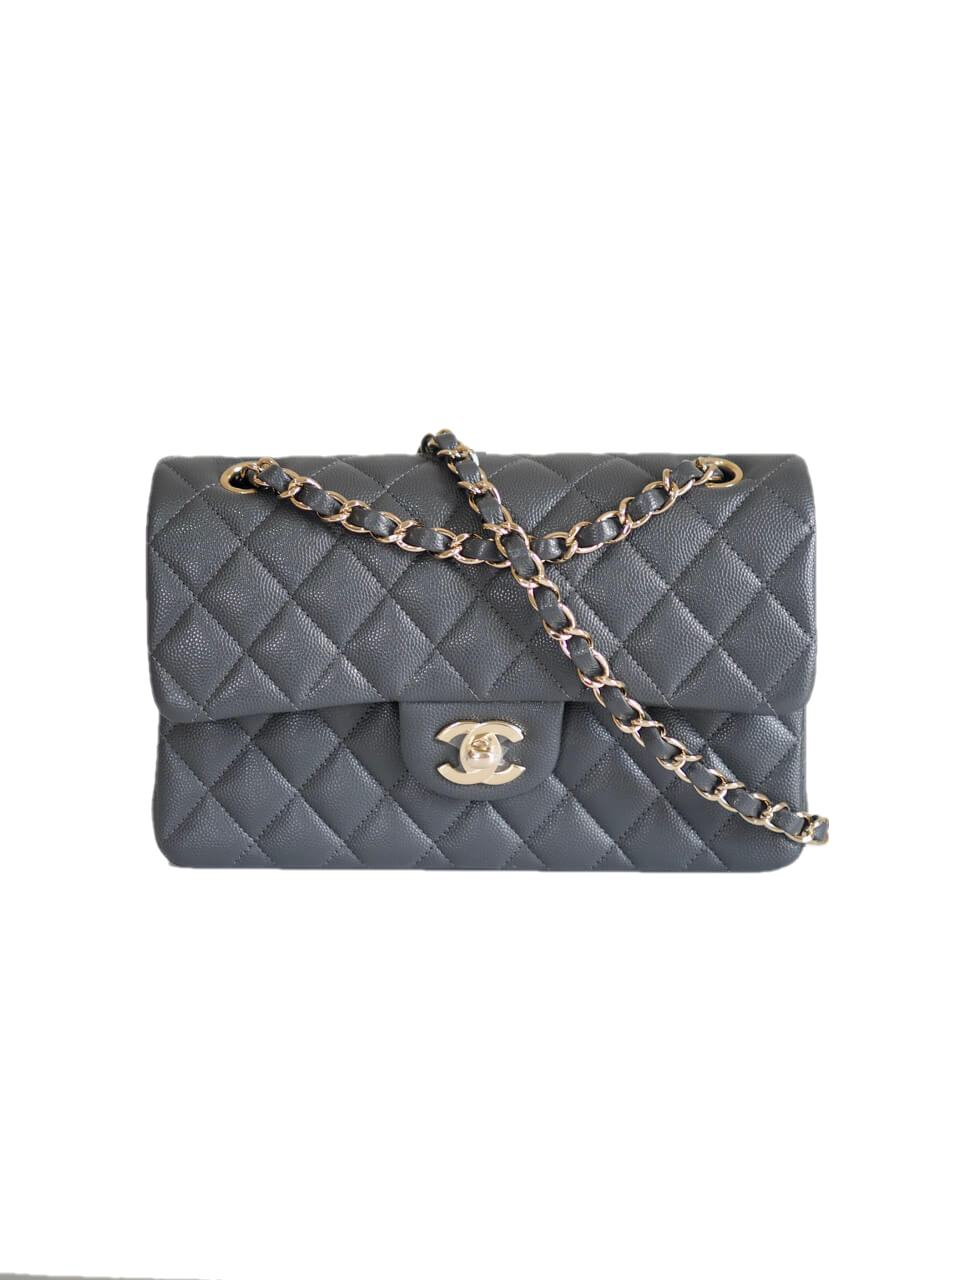 How Much Are Chanel Purses on the Resale Market? chanel small flap